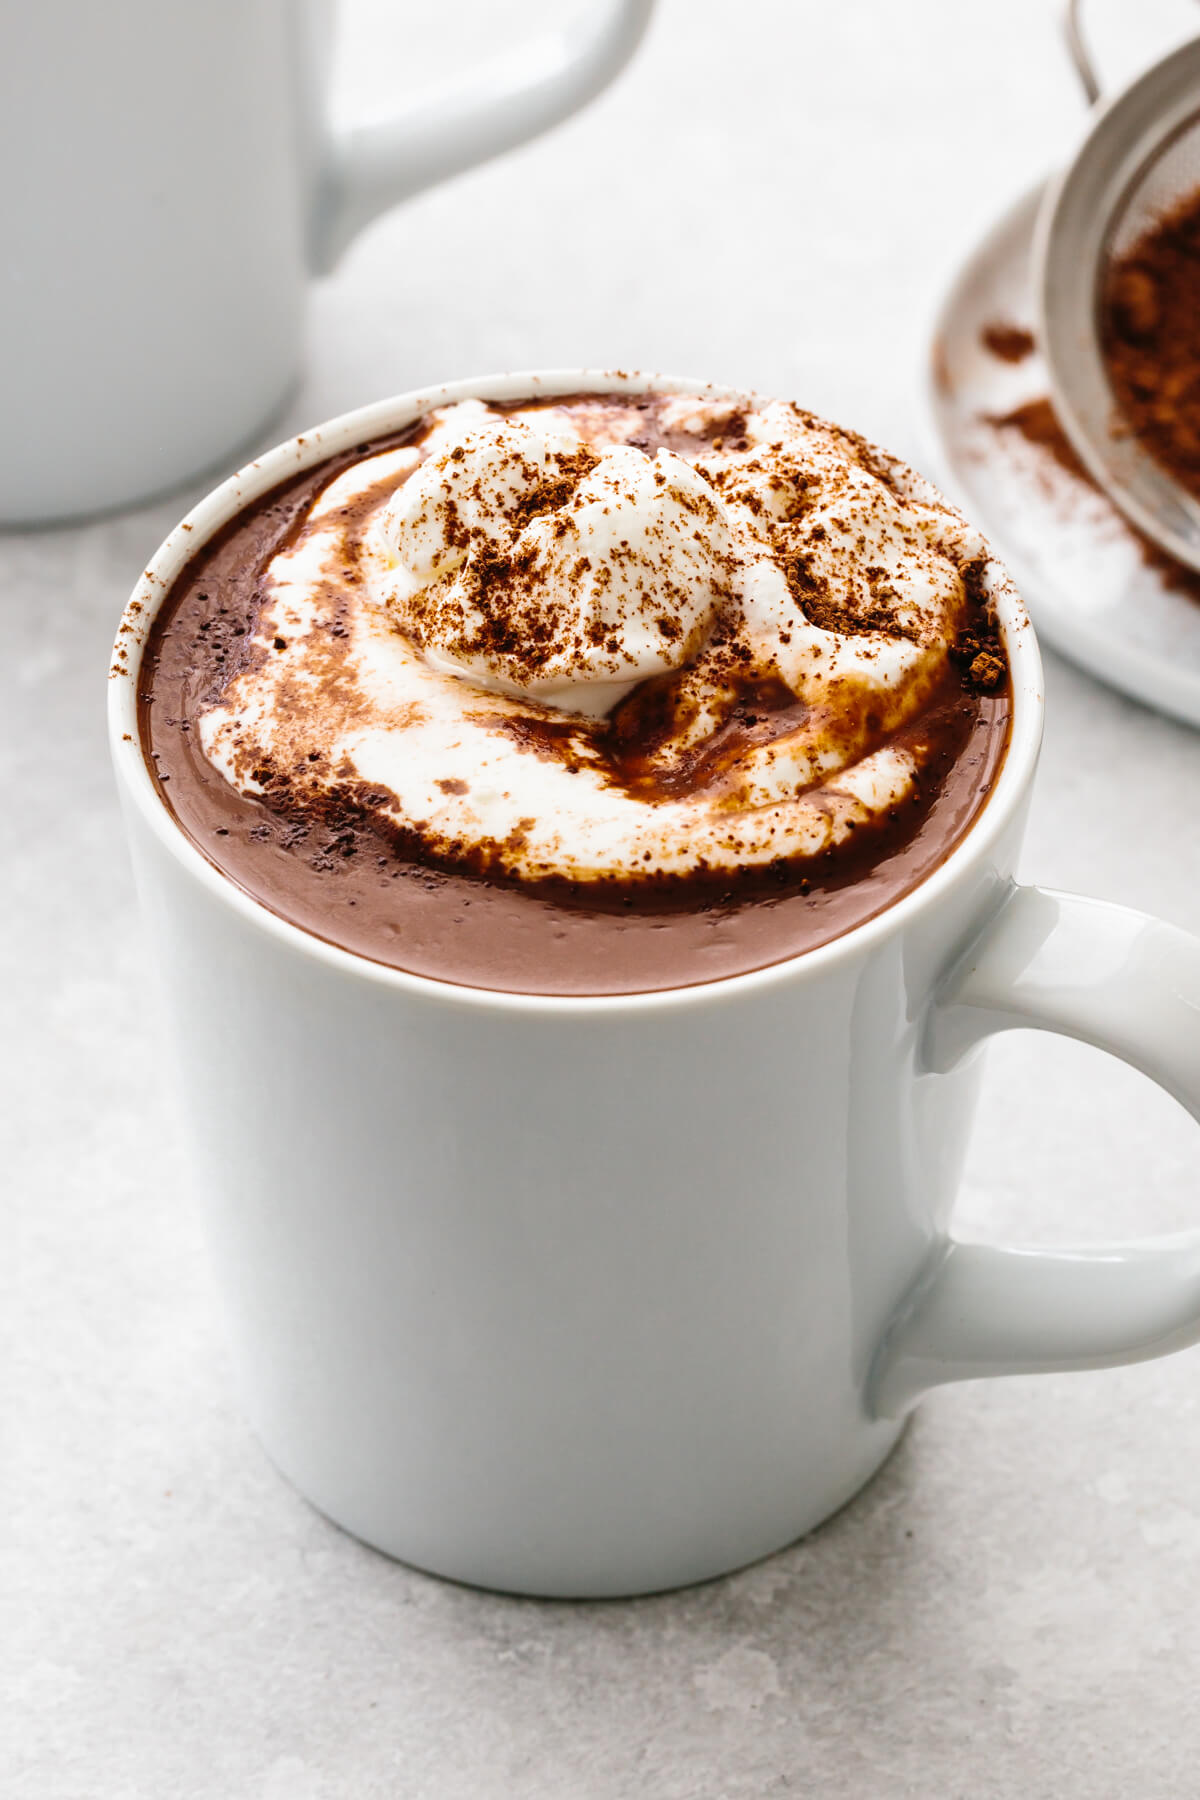 Hot chocolate in a white mug on a table.